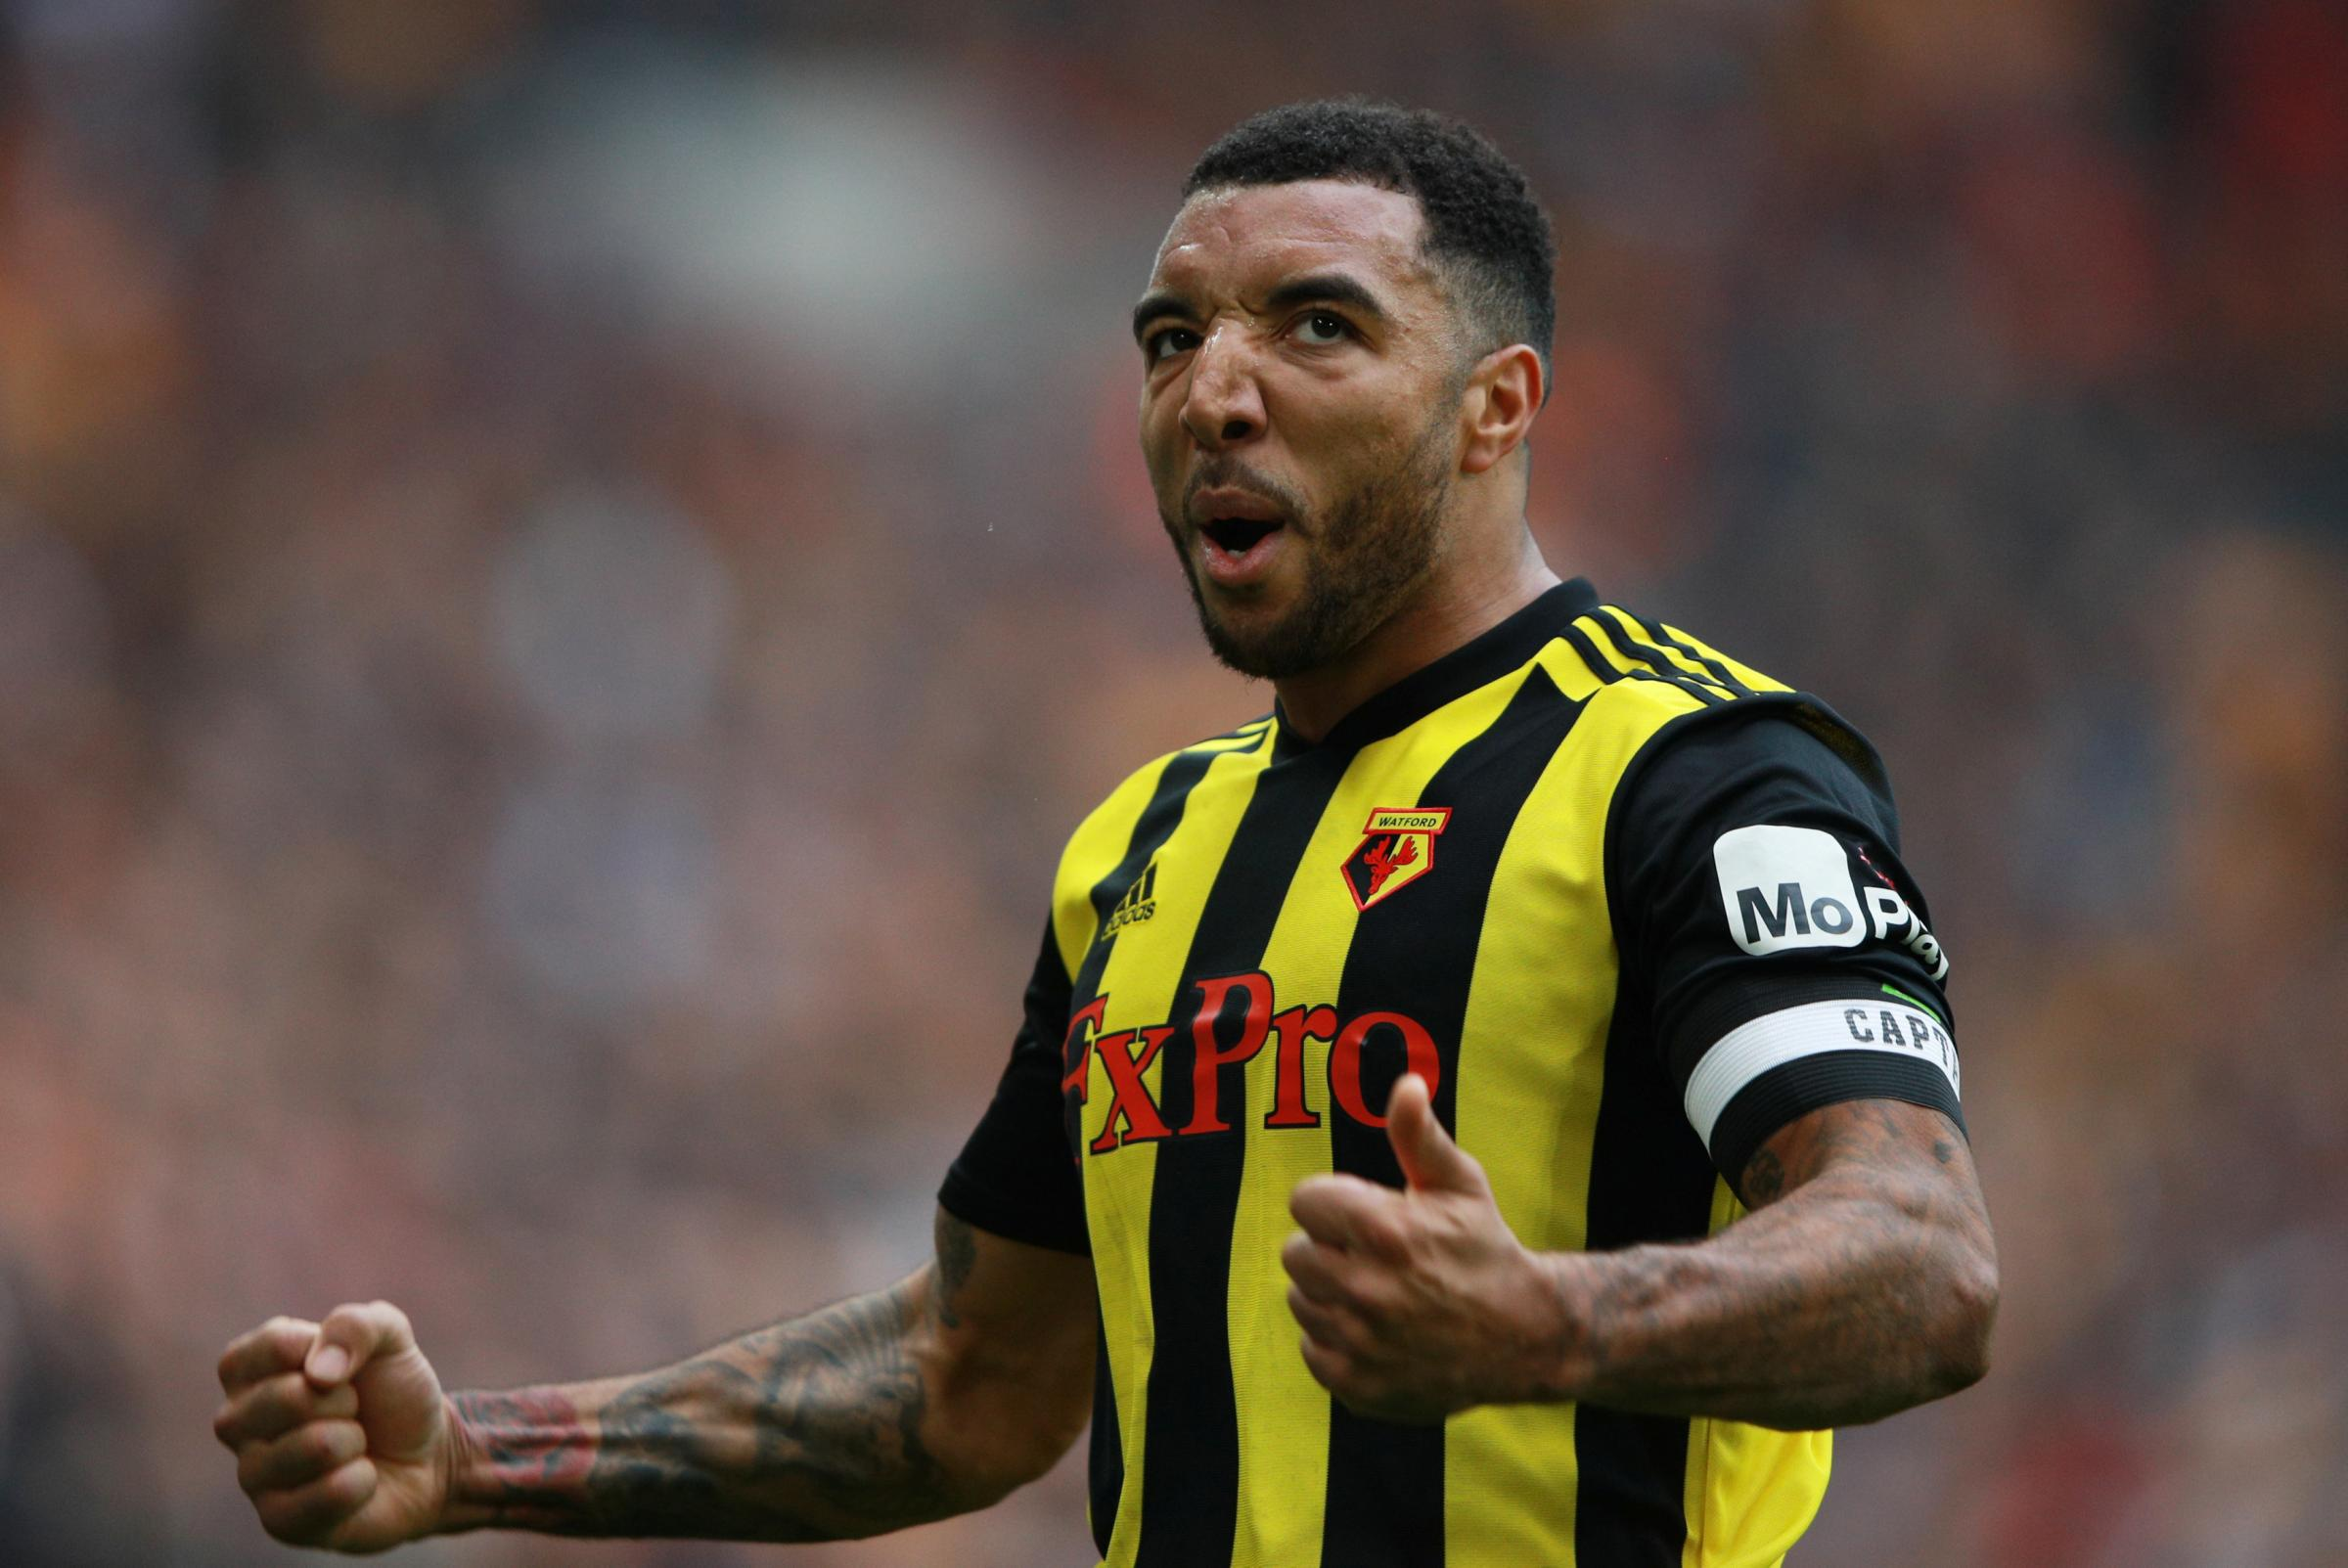 Troy Deeney celebrates Watford's FA Cup victory. Picture: Action Images